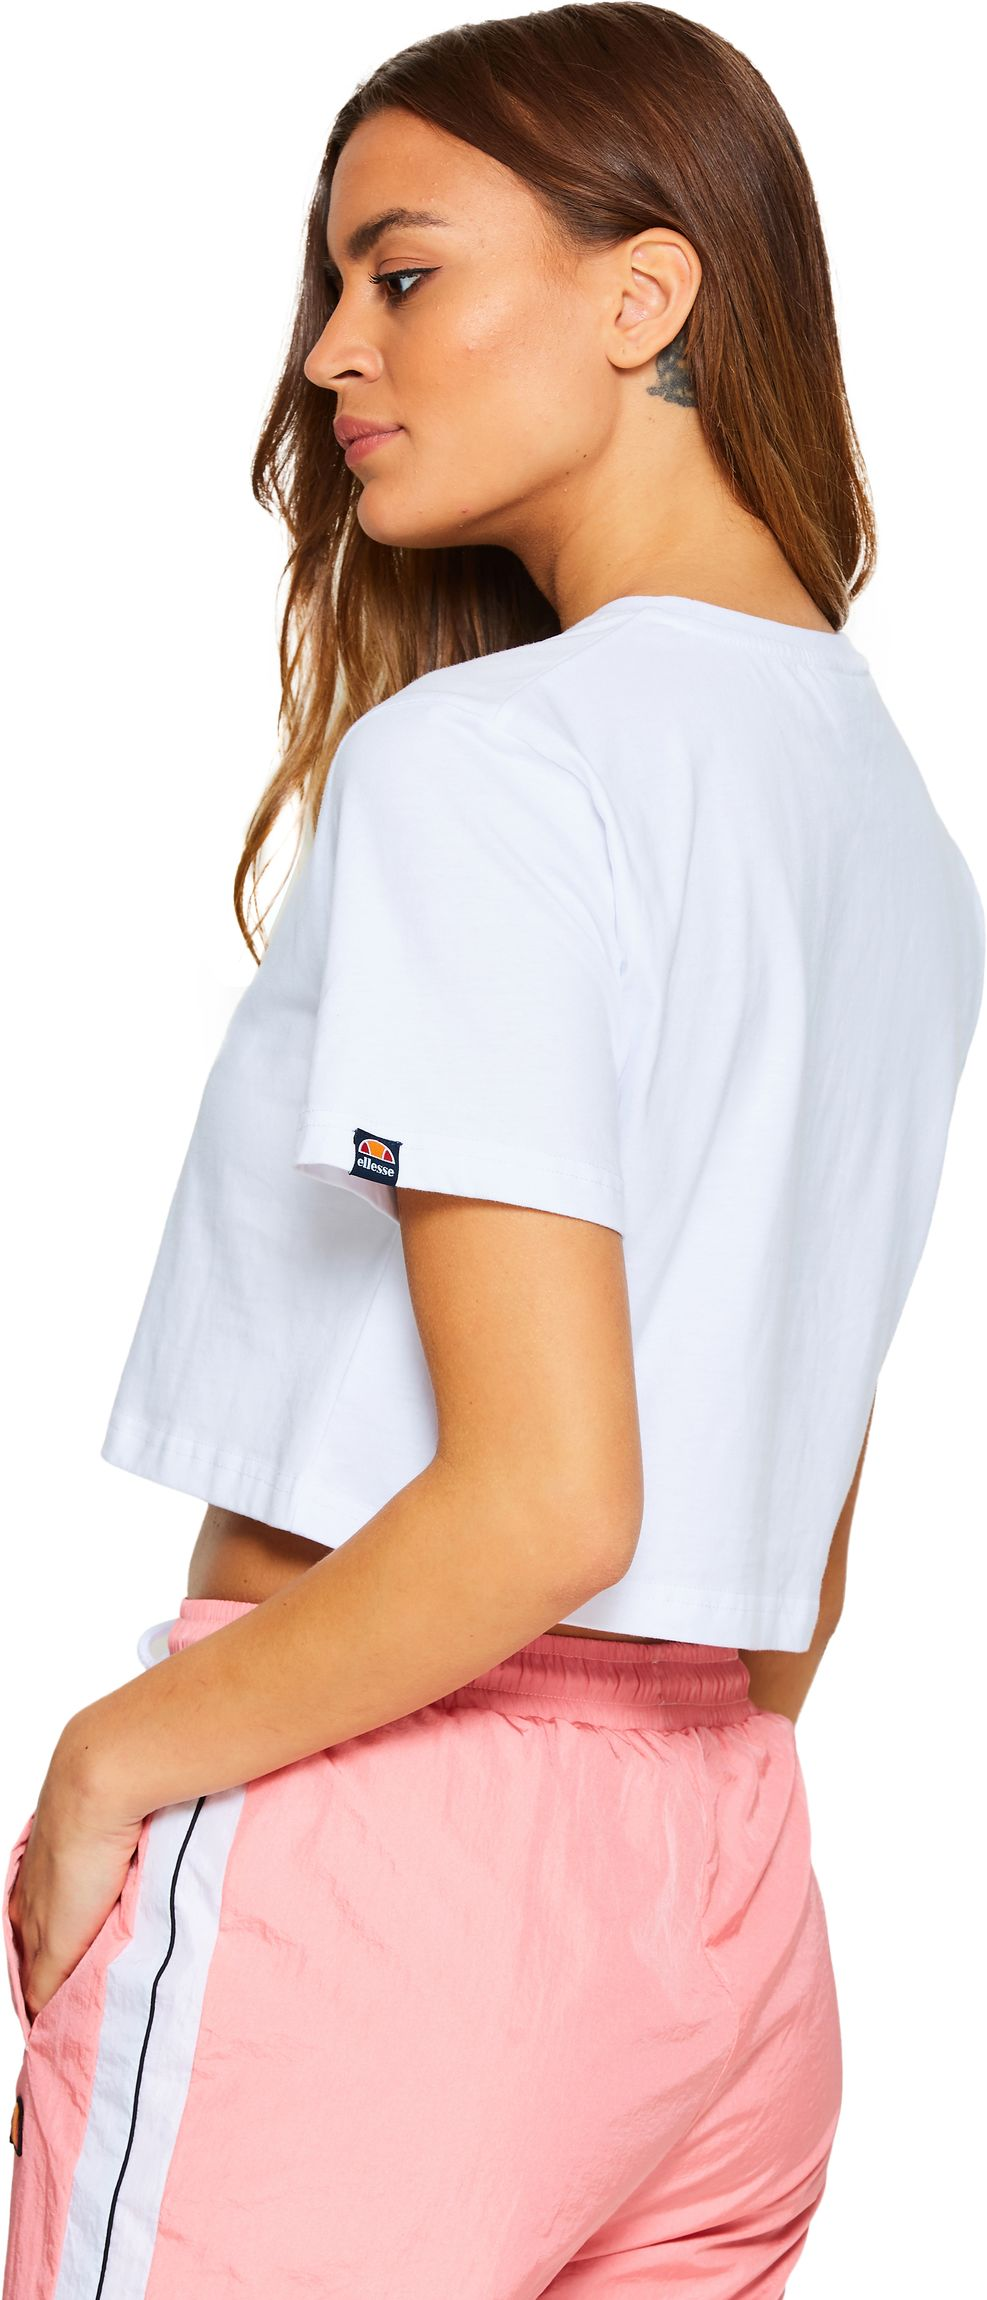 Ellesse-T-Shirts-amp-Tops-Women-039-s-Assorted-Fit-Styles thumbnail 58